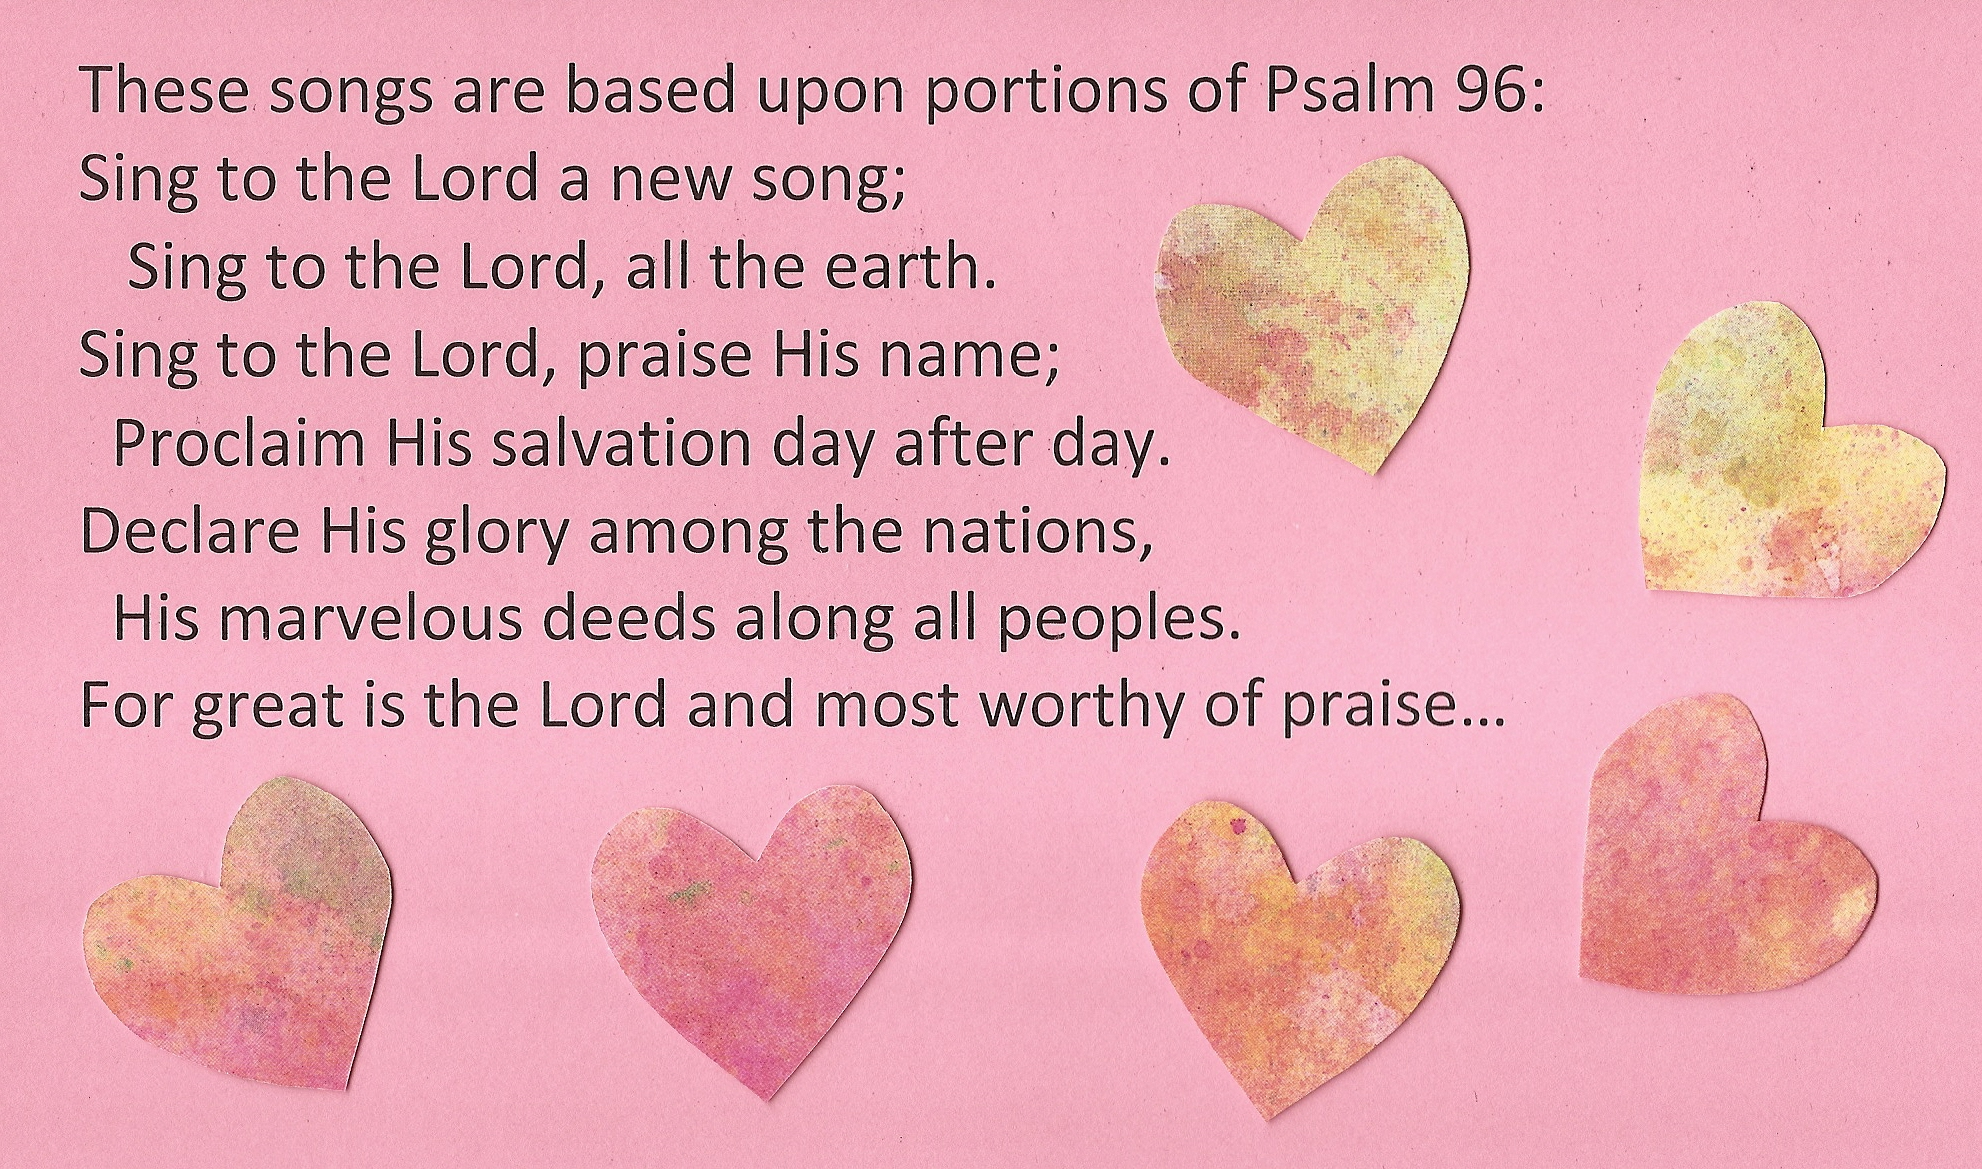 an analysis of the elements of praise in psalm 96 Psalm 119, the longest one in the entire book, is an alphabetical poem written in praise of the law the psalms' teachings are difficult to summarize because their main purpose is not instruction but expressions of the heart made in the spirit of worship.